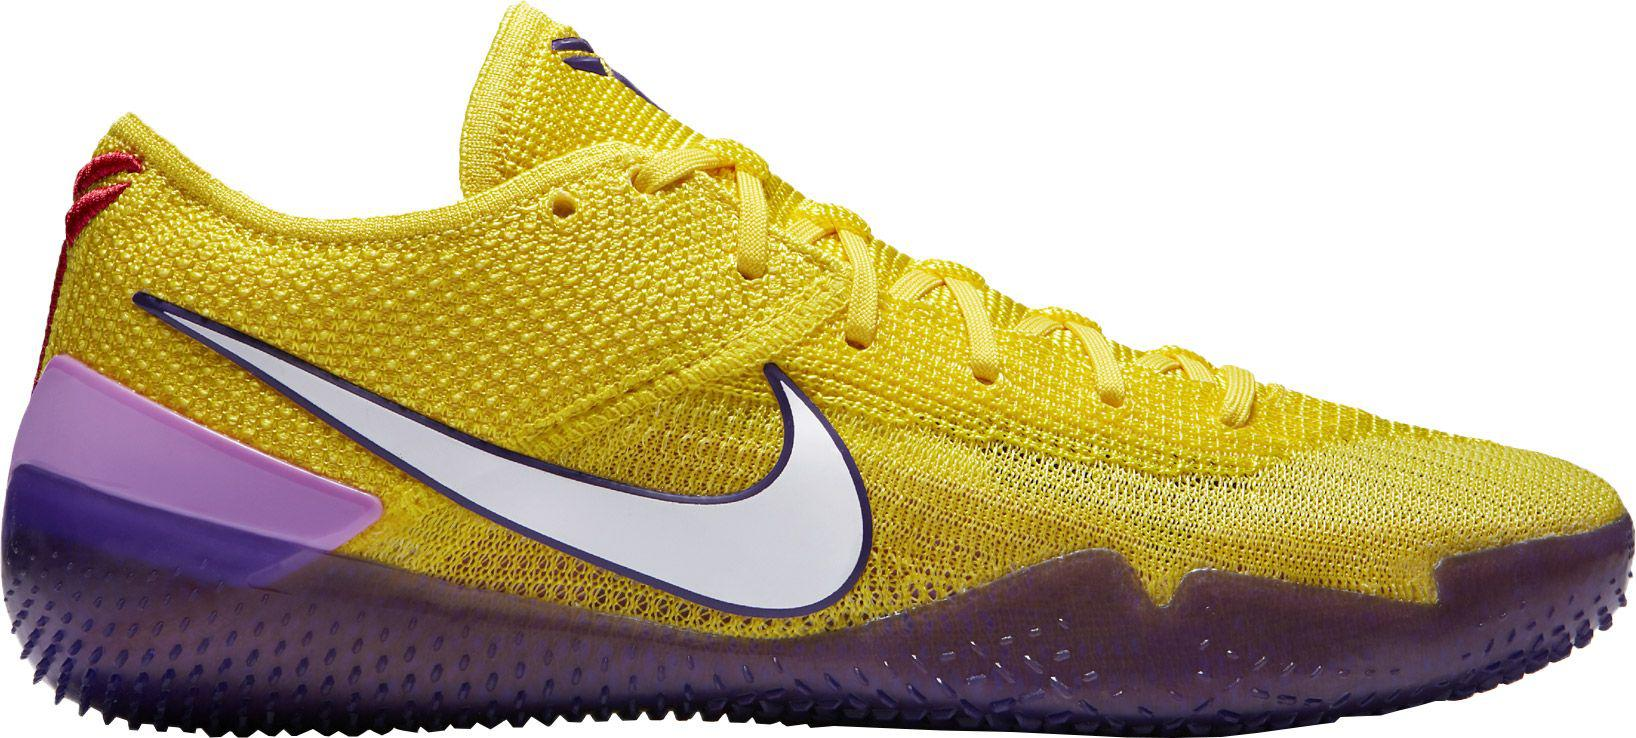 ebb71ef7dcce Nike Kobe A.d. Nxt 360 Basketball Shoes in Yellow for Men - Lyst